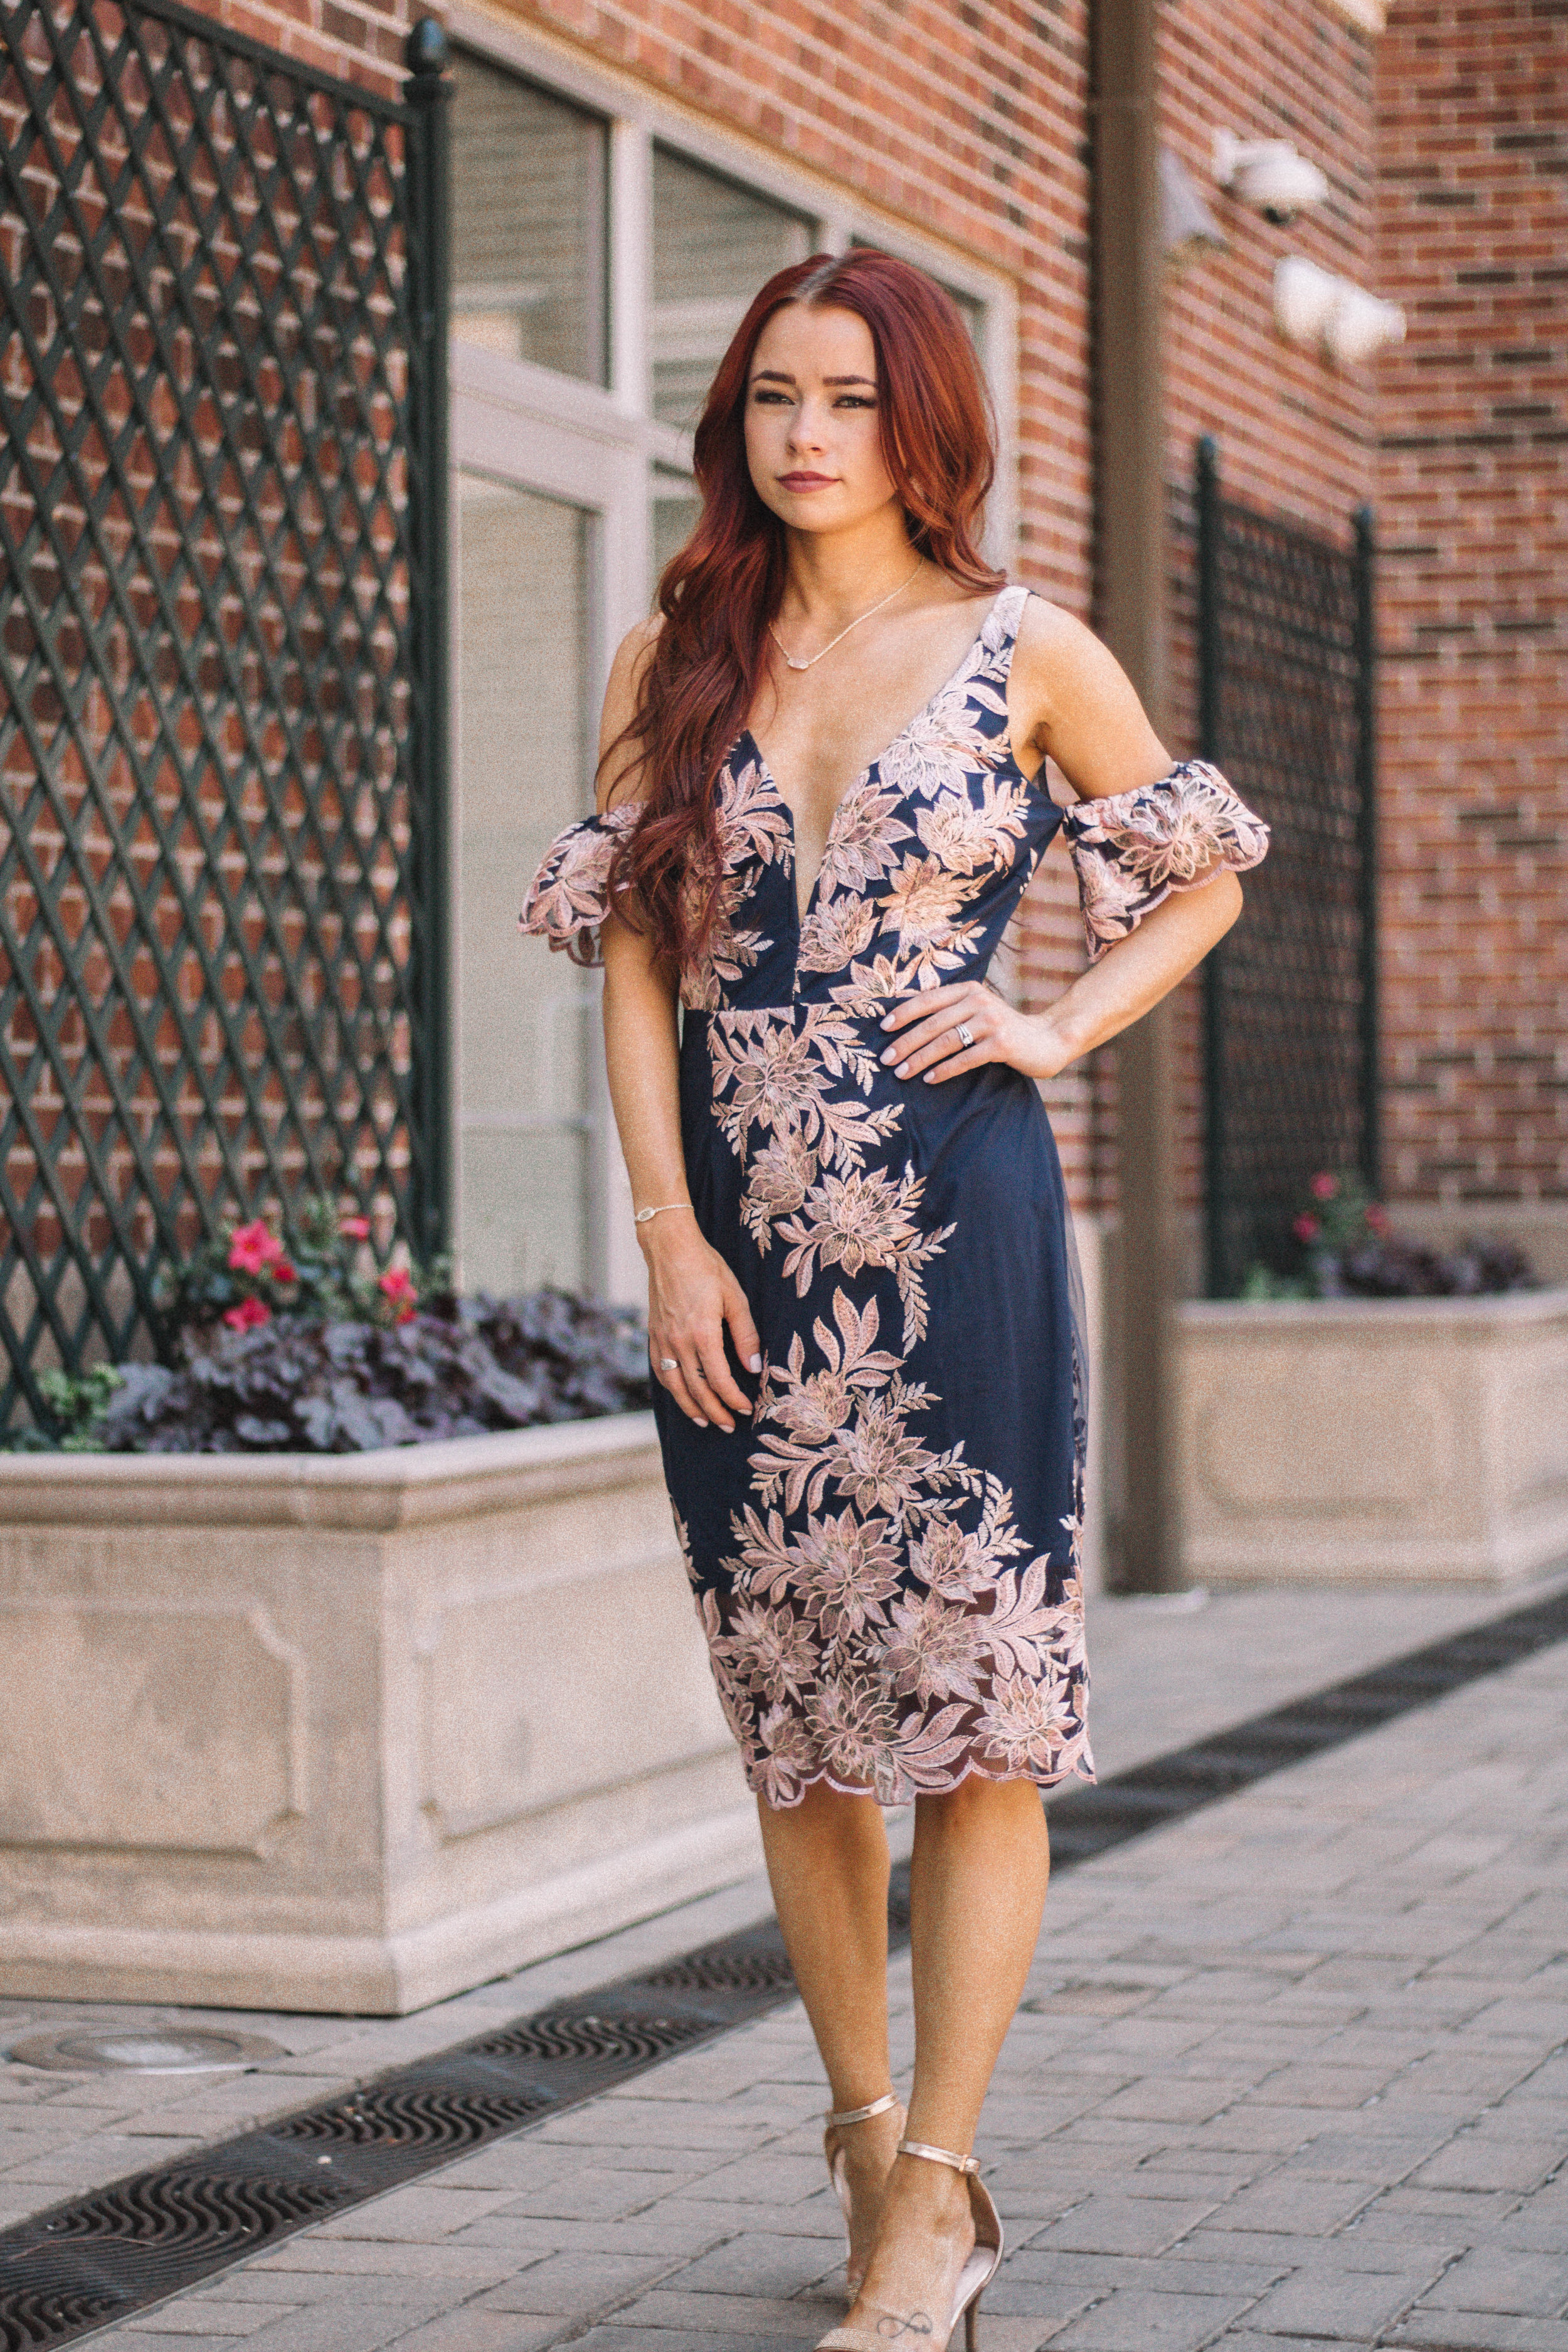 Cute Summer Wedding Guest Dresses with Ella Mae's featured by popular Indianapolis fashion blogger, Trendy in Indy